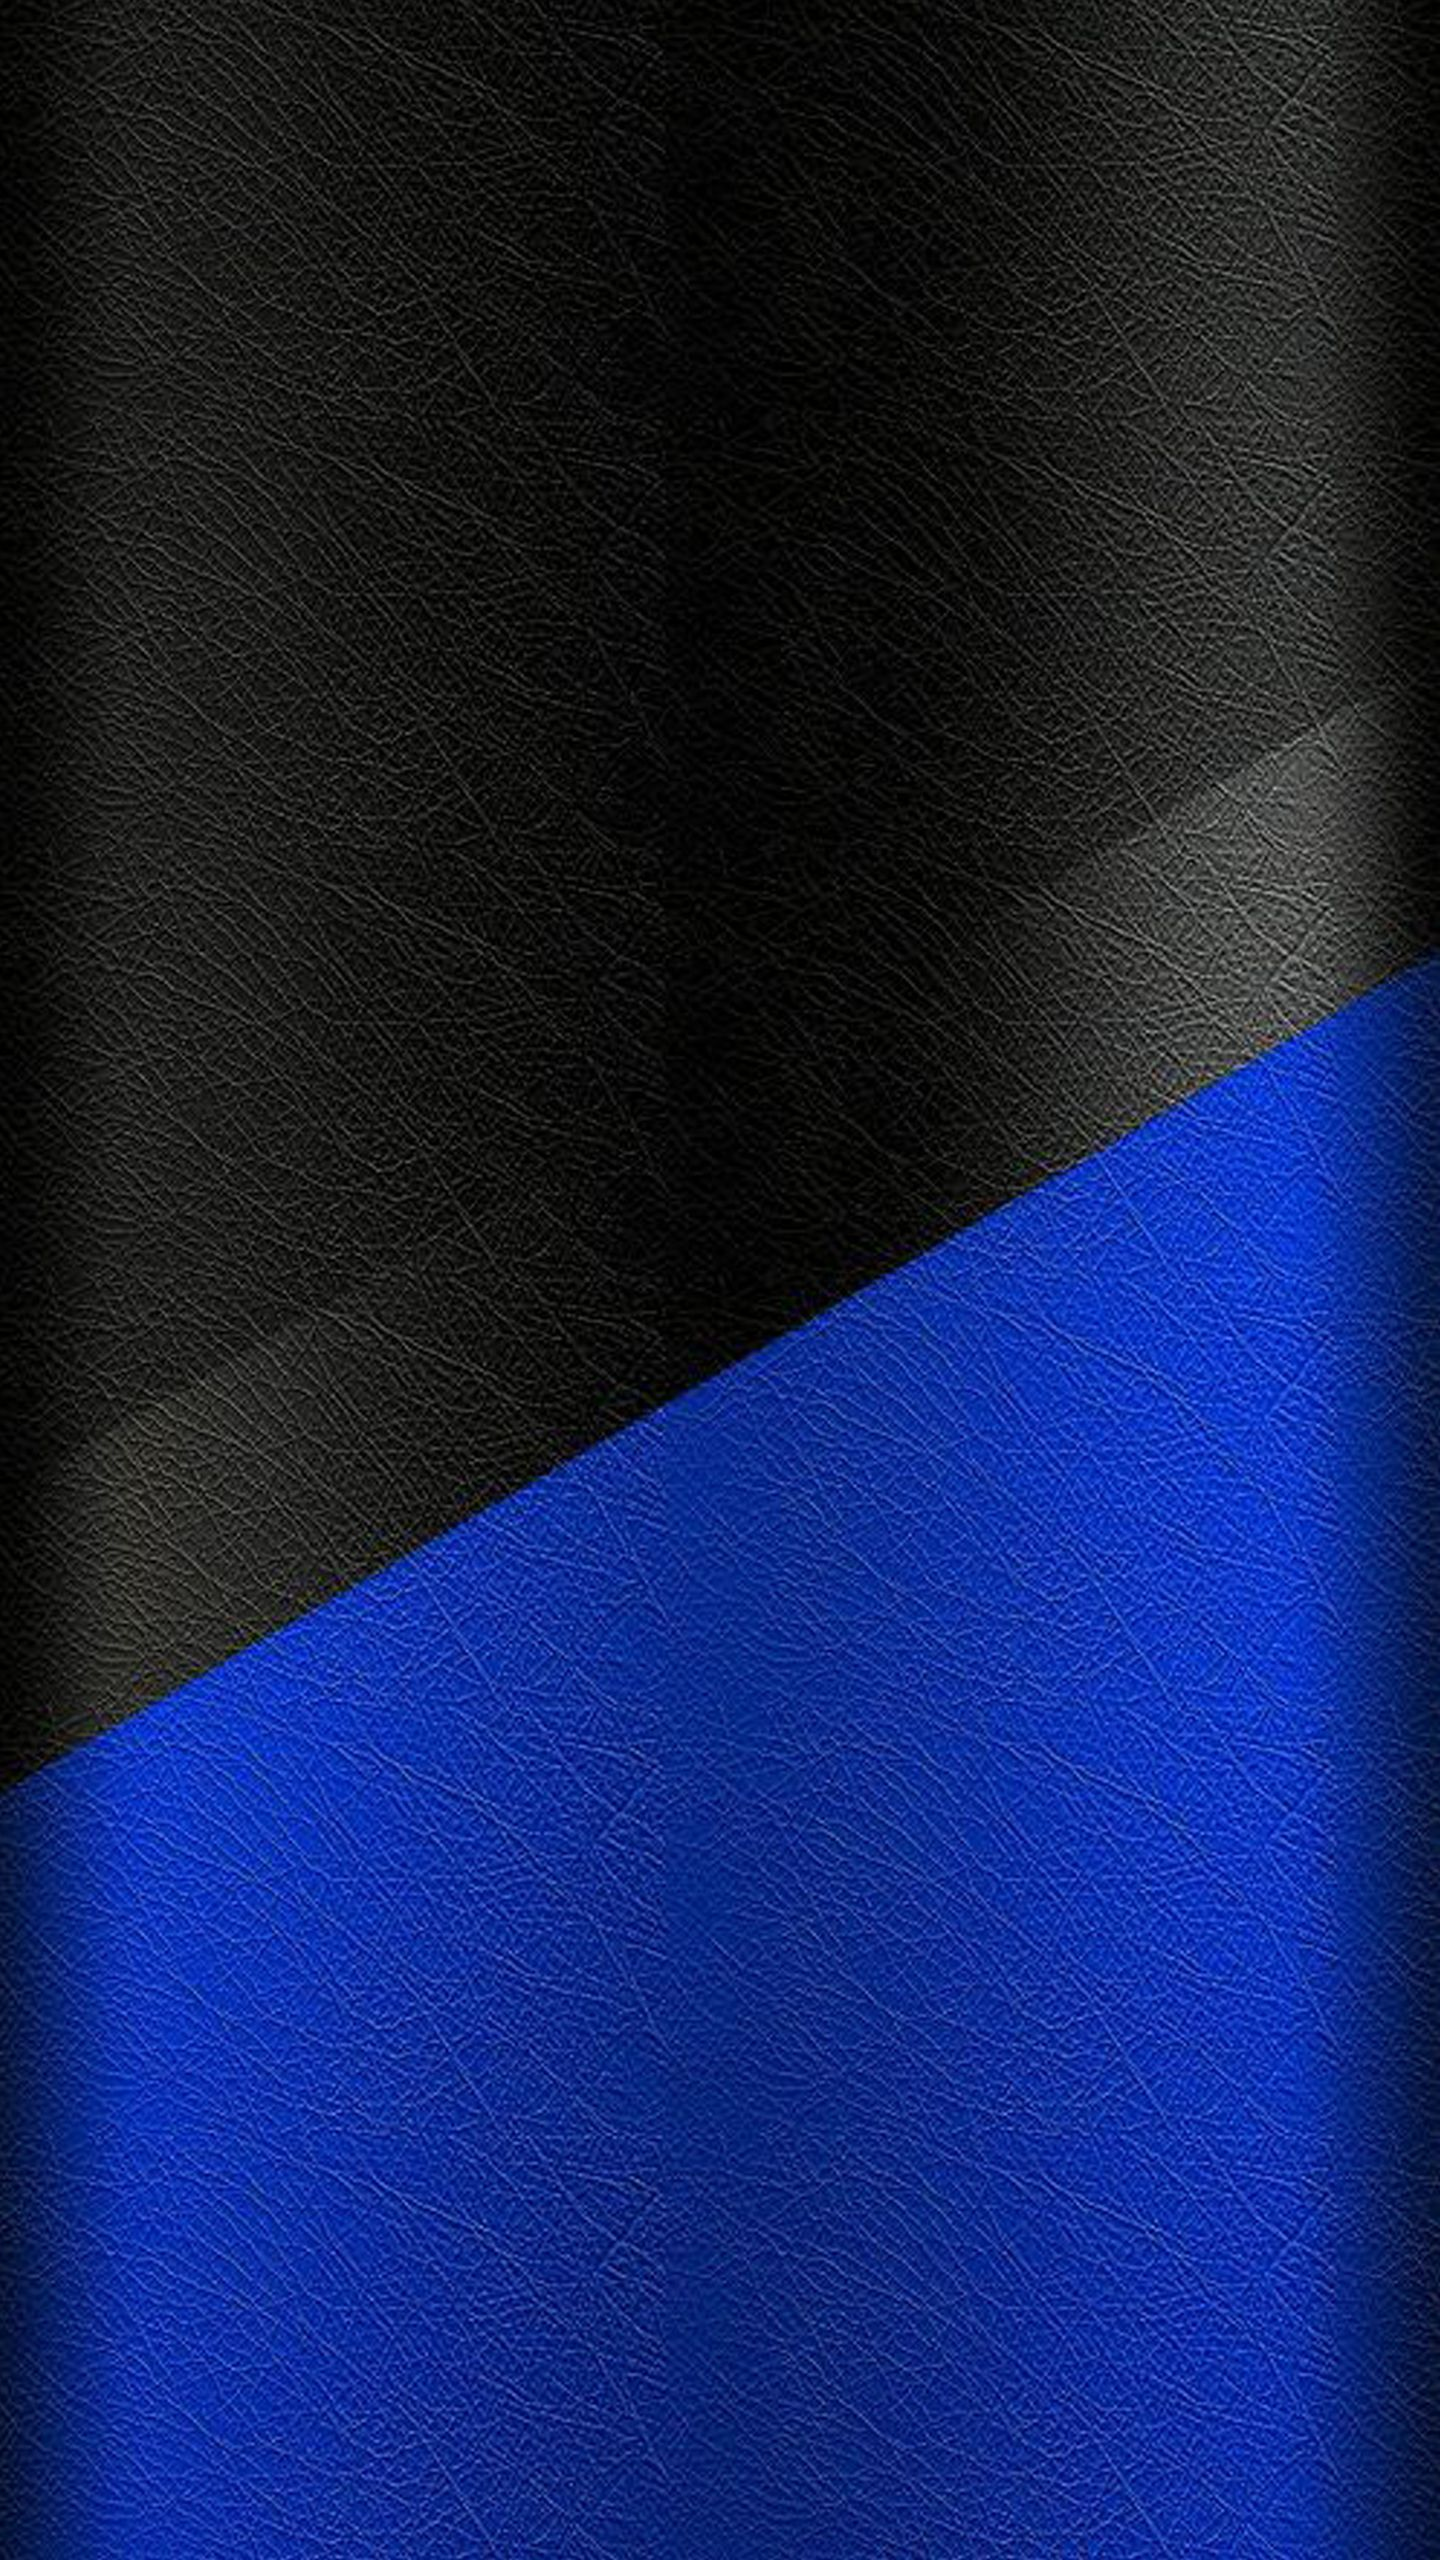 Dark S7 Edge Wallpaper 02 Black And Blue Leather Pattern Háttér